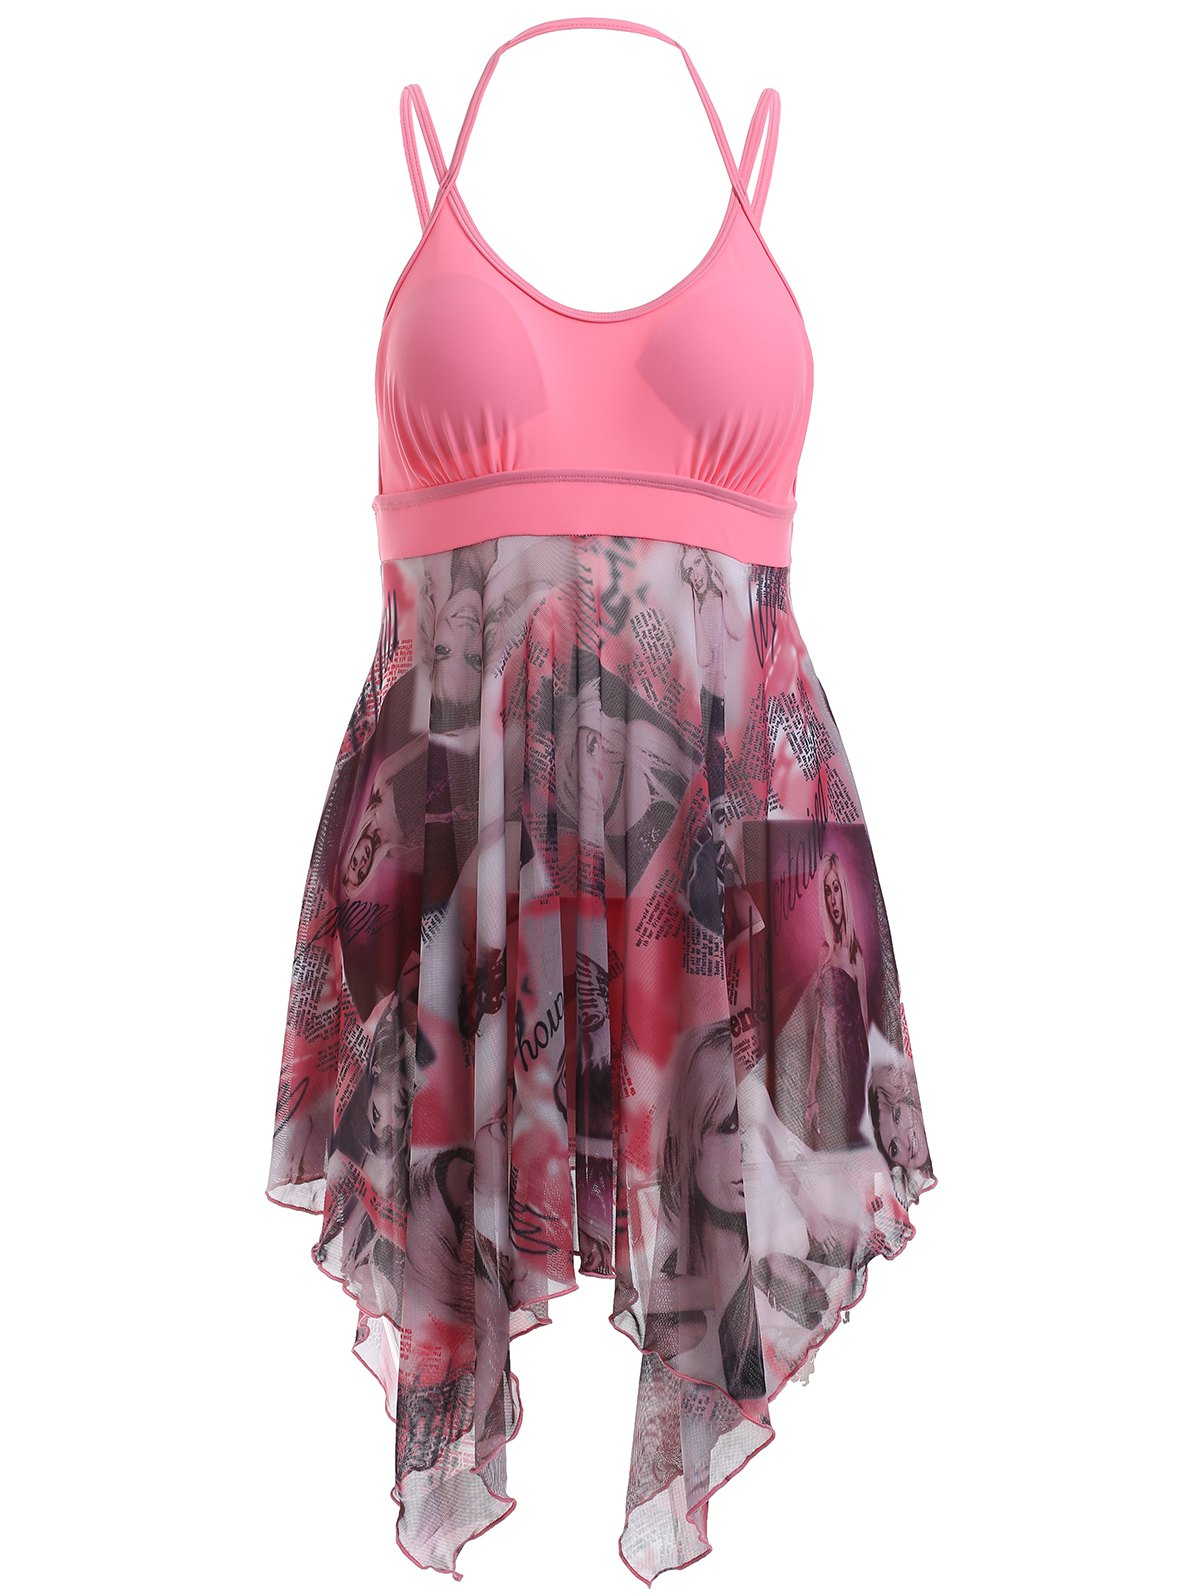 Alluring Spaghetti Strap Beauty Print High Low One-Piece Swimsuit - PINK 2XL